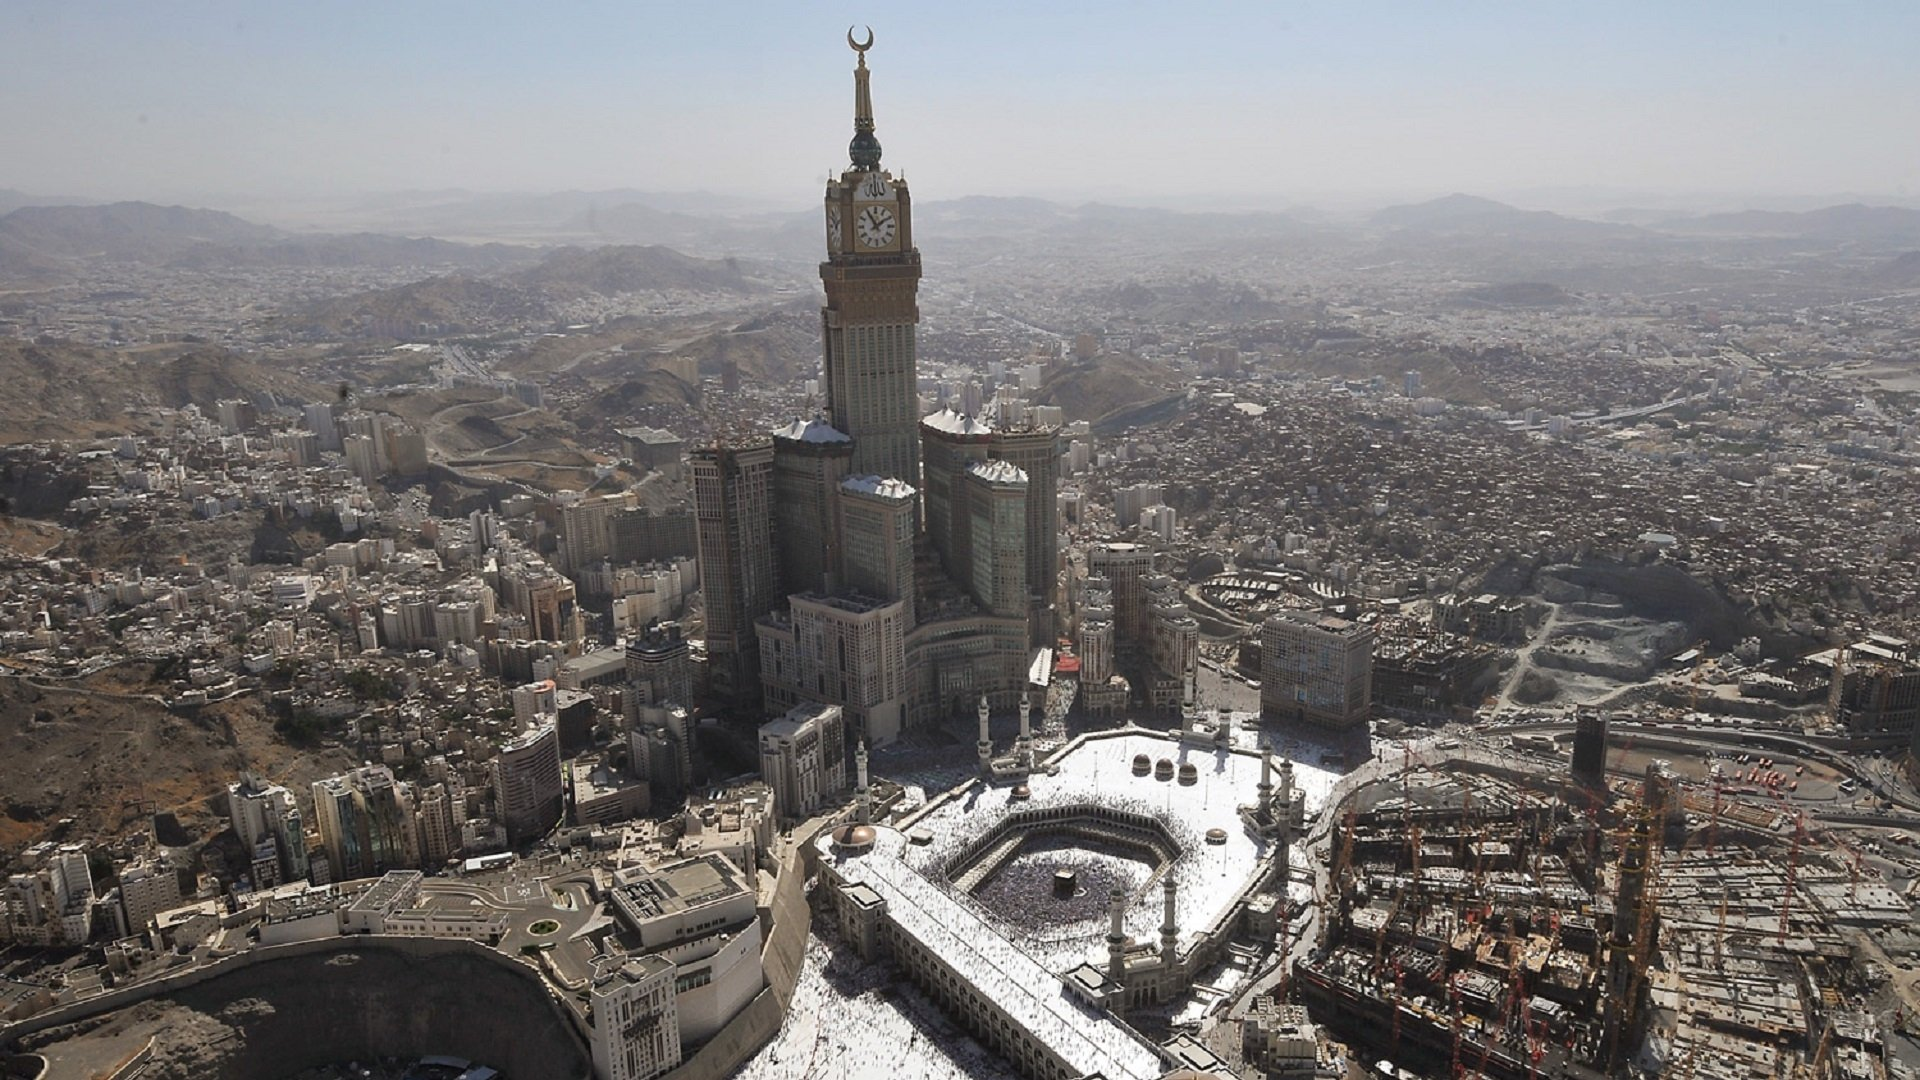 Mecca Clock Tower Hd Wallpaper Background Image